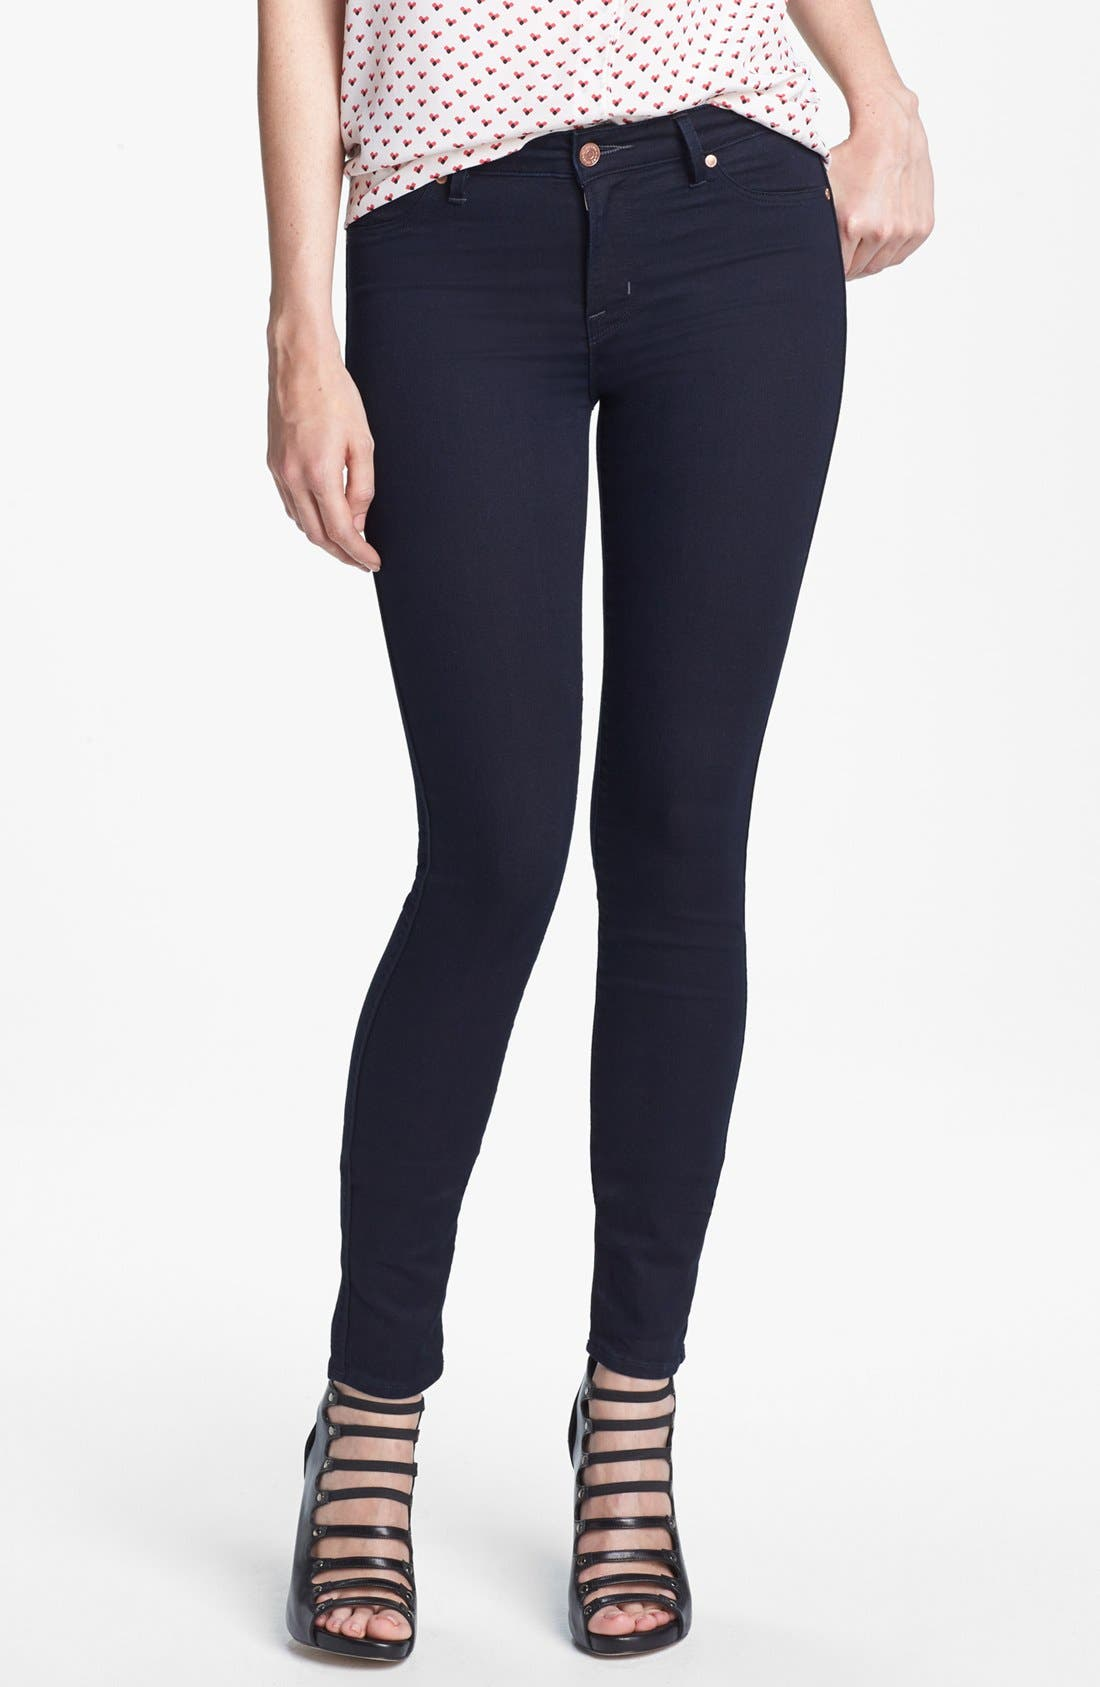 Alternate Image 1 Selected - MARC BY MARC JACOBS 'Jac' Leggings